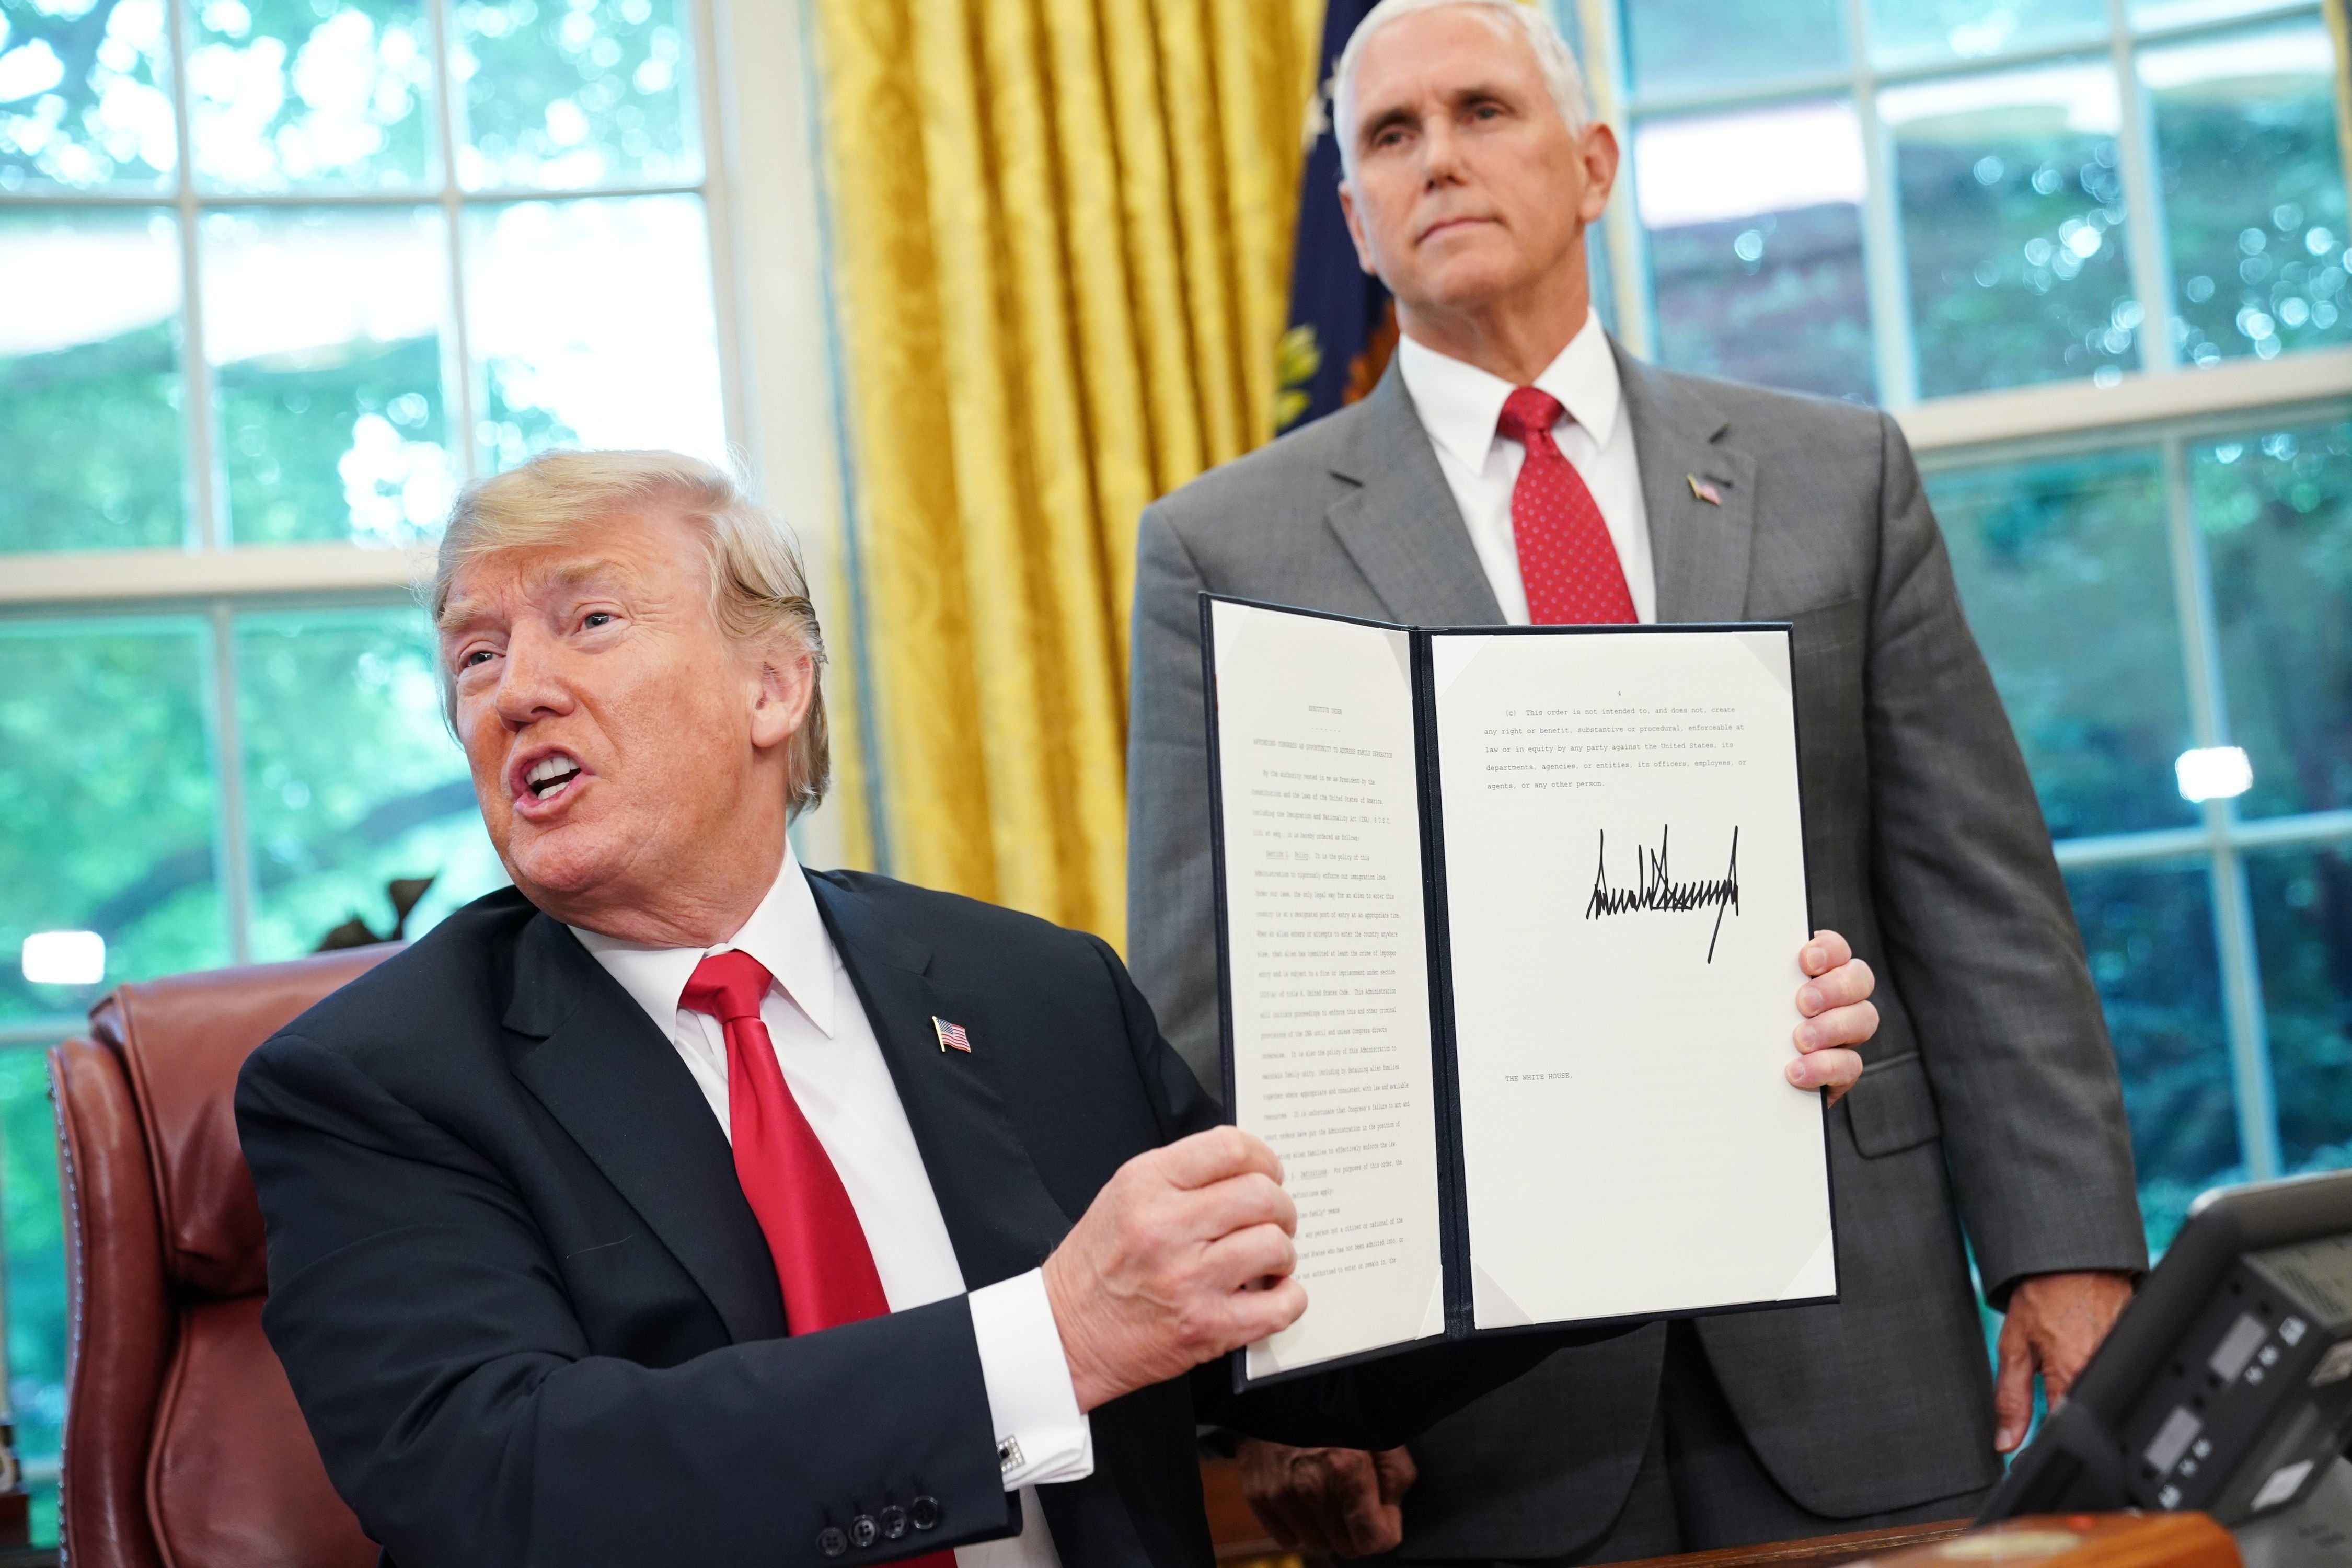 TOPSHOT - Watched by Vice President Mike Pence, US President Donald Trump shows an executive order on immigration which he just signed in the Oval Office of the White House on June 20, 2018 in Washington, DC. - US President Donald Trump on Wednesday signed an executive order aimed at putting an end to the controversial separation of migrant families at the border, reversing a harsh practice that had earned international scorn.'It's about keeping families together,' Trump said at the signing ceremony. 'I did not like the sight of families being separated,' he added. (Photo by Mandel Ngan / AFP)        (Photo credit should read MANDEL NGAN/AFP/Getty Images)